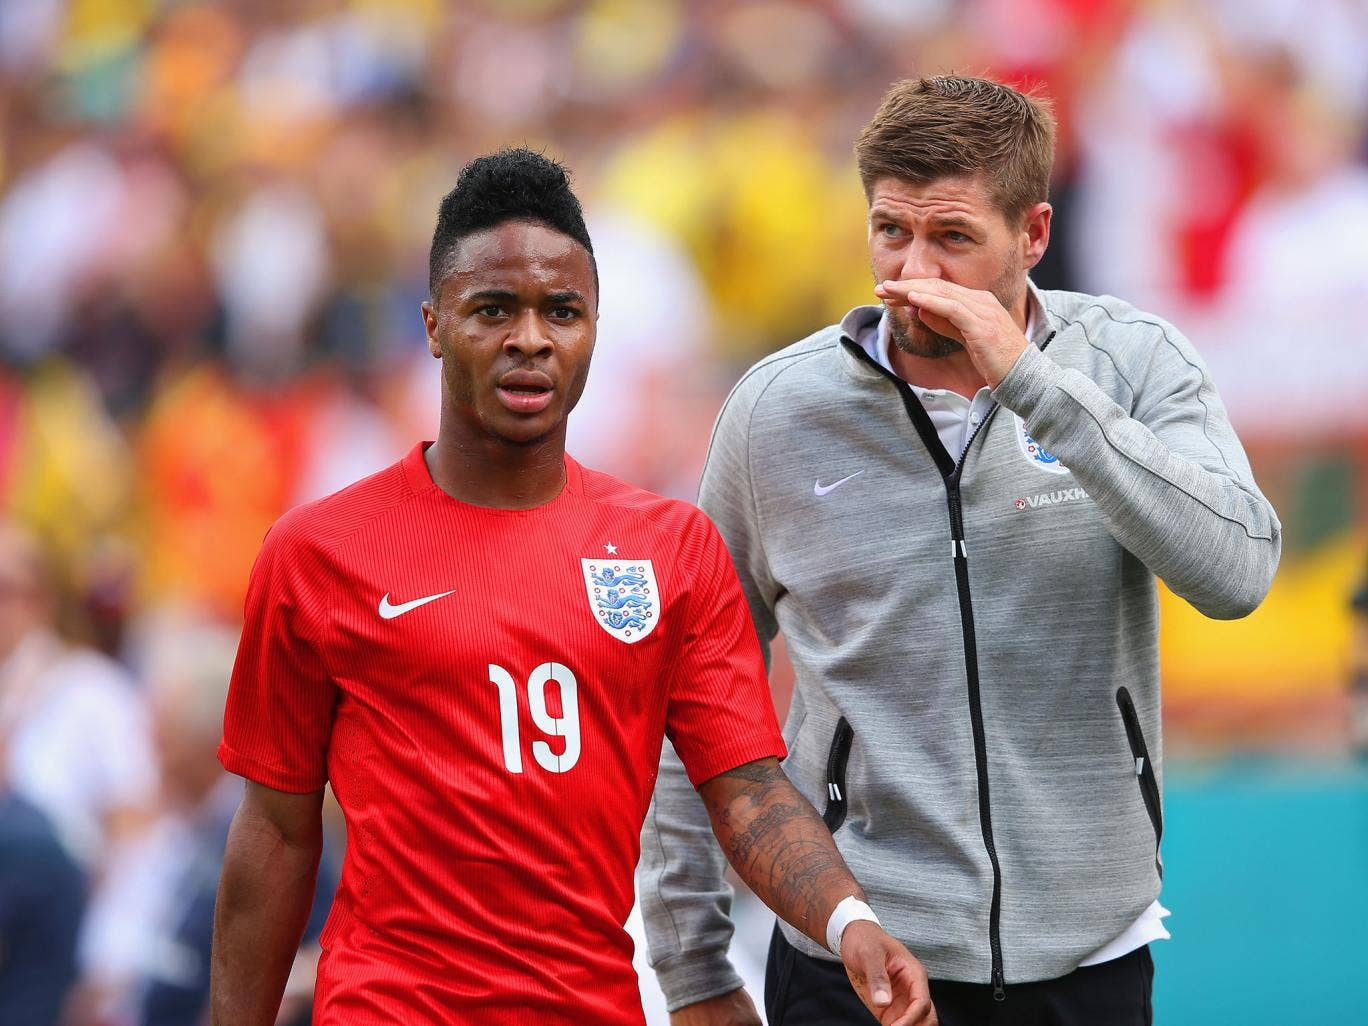 Raheem Sterling walks off the pitch in Miami alongside Steven Gerrard after being sent off for a tackle on Antonio Valencia